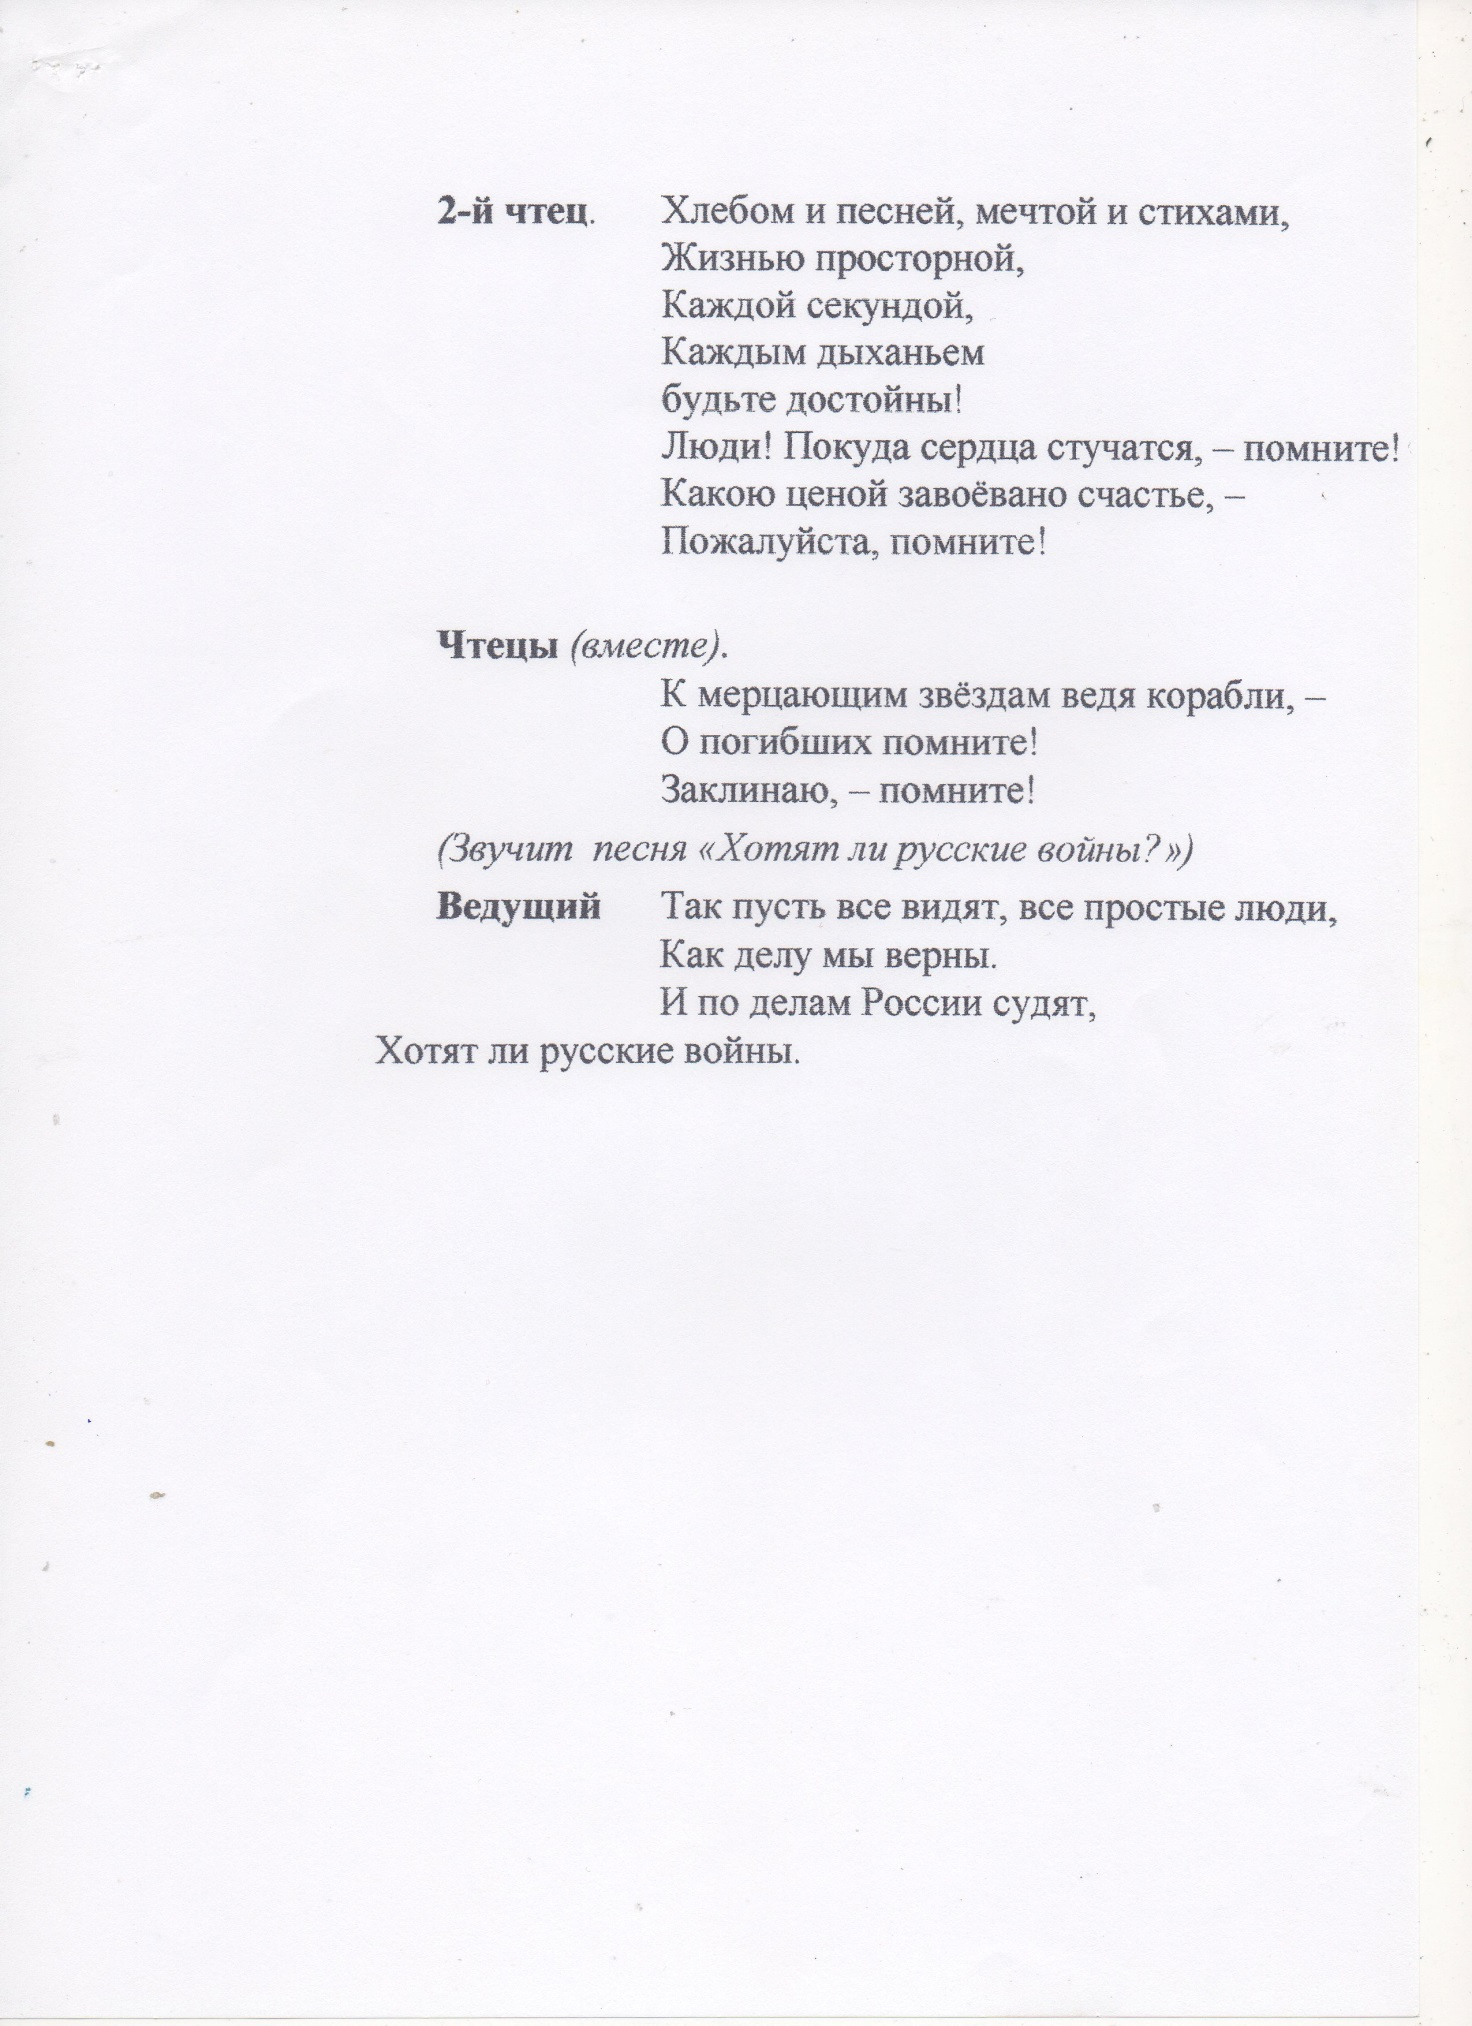 C:\Users\user\Pictures\скан\img056.jpg